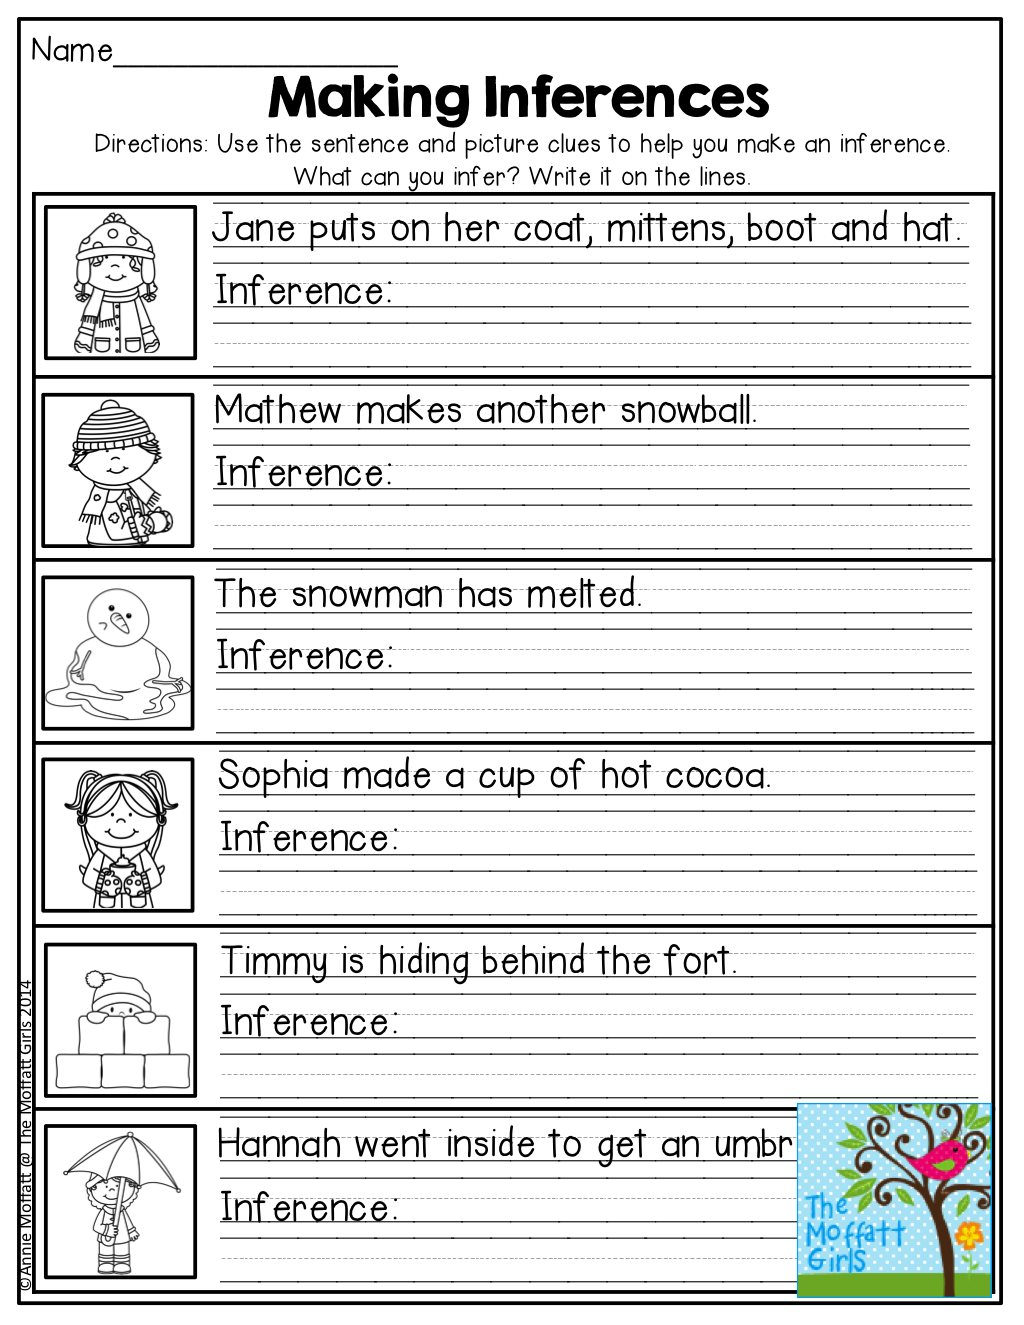 Inference Worksheet For 2nd Grade